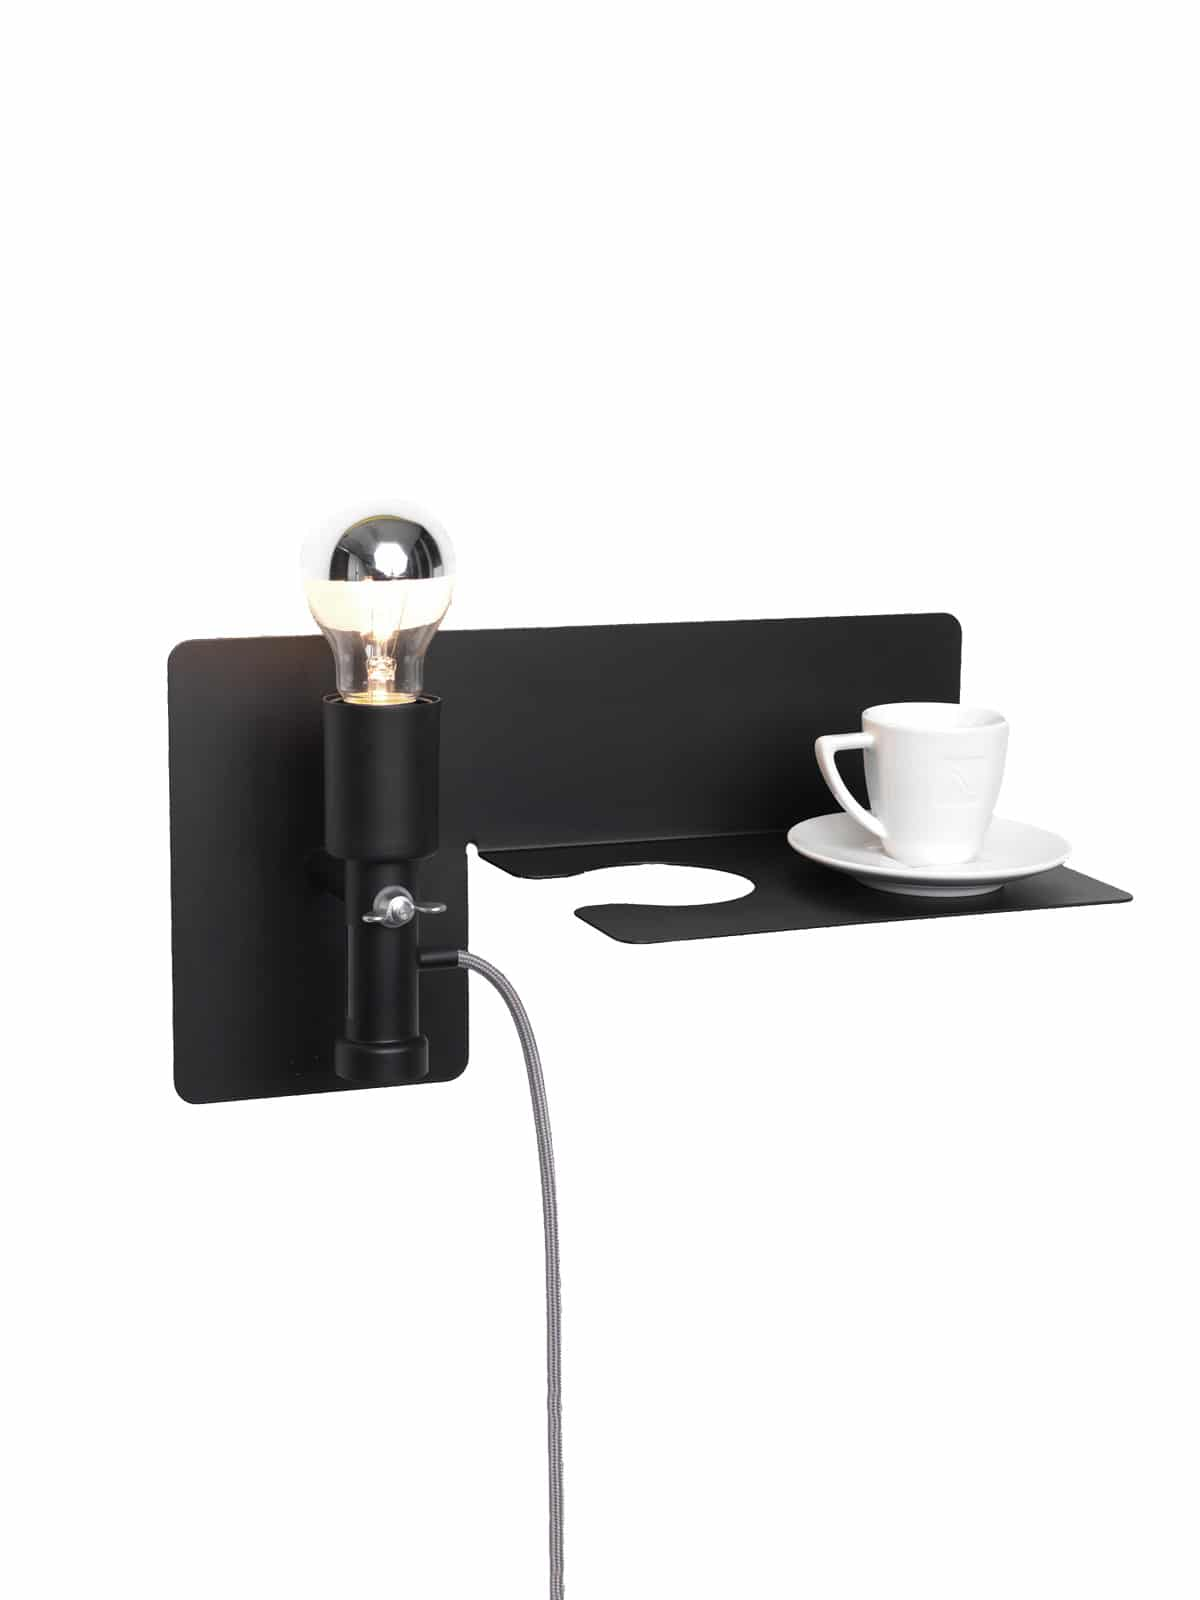 Lampen online kaufen Sunday Wandleuchte Northern Lighting DesignOrt Berlin